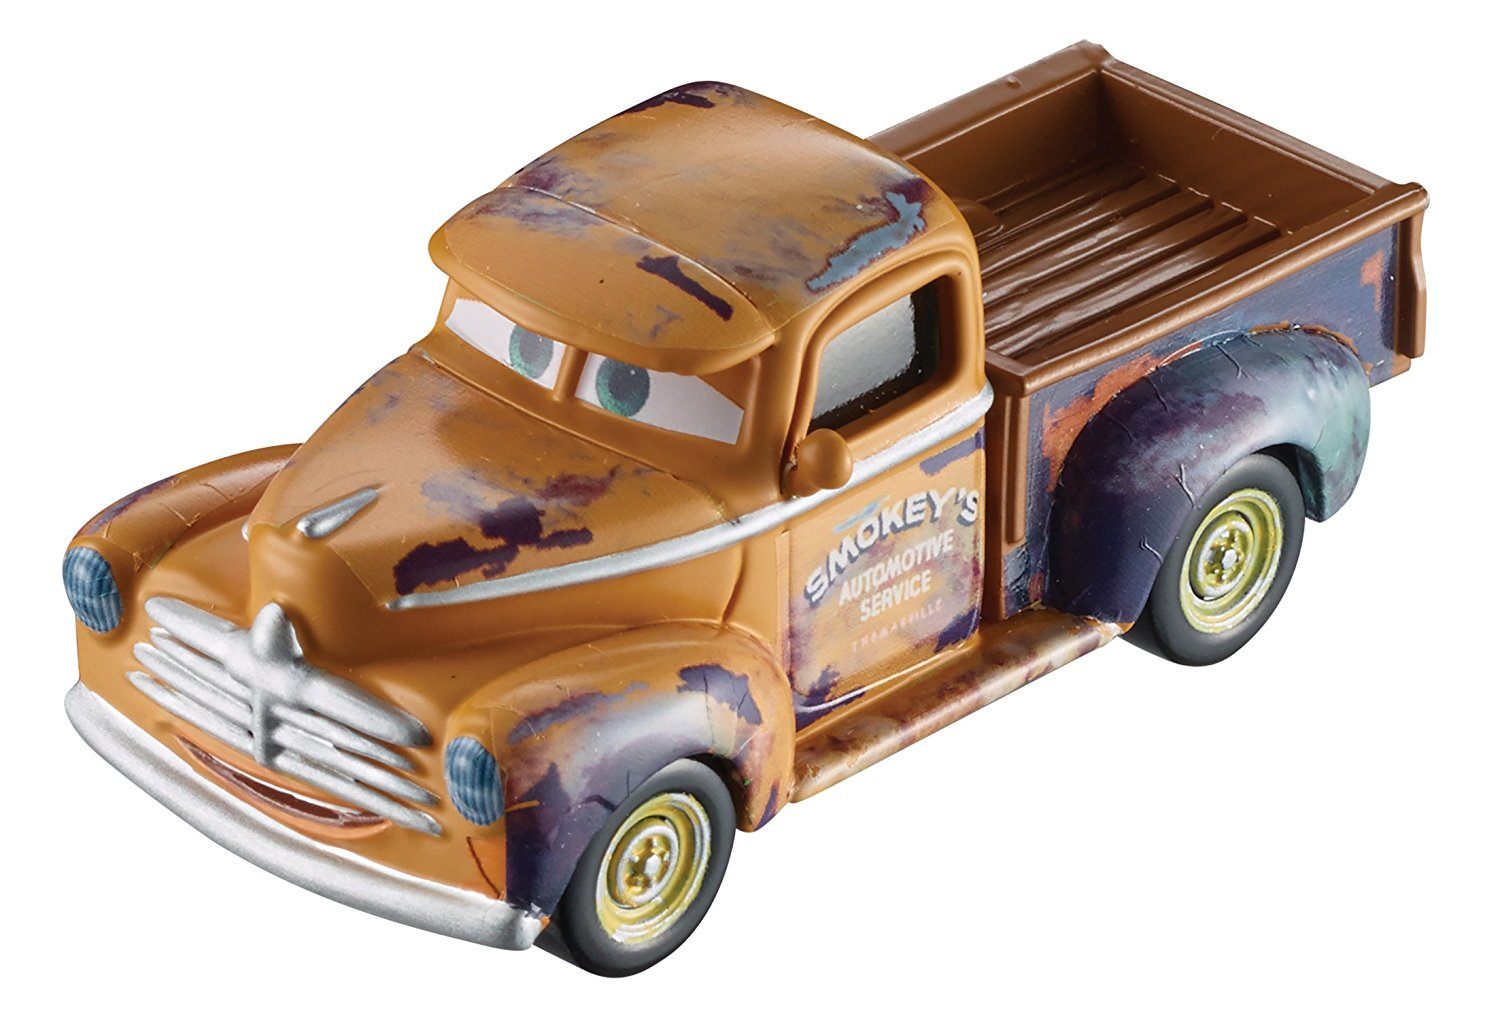 Disney Cars Pixar Die-Cast Smokey Vehicle